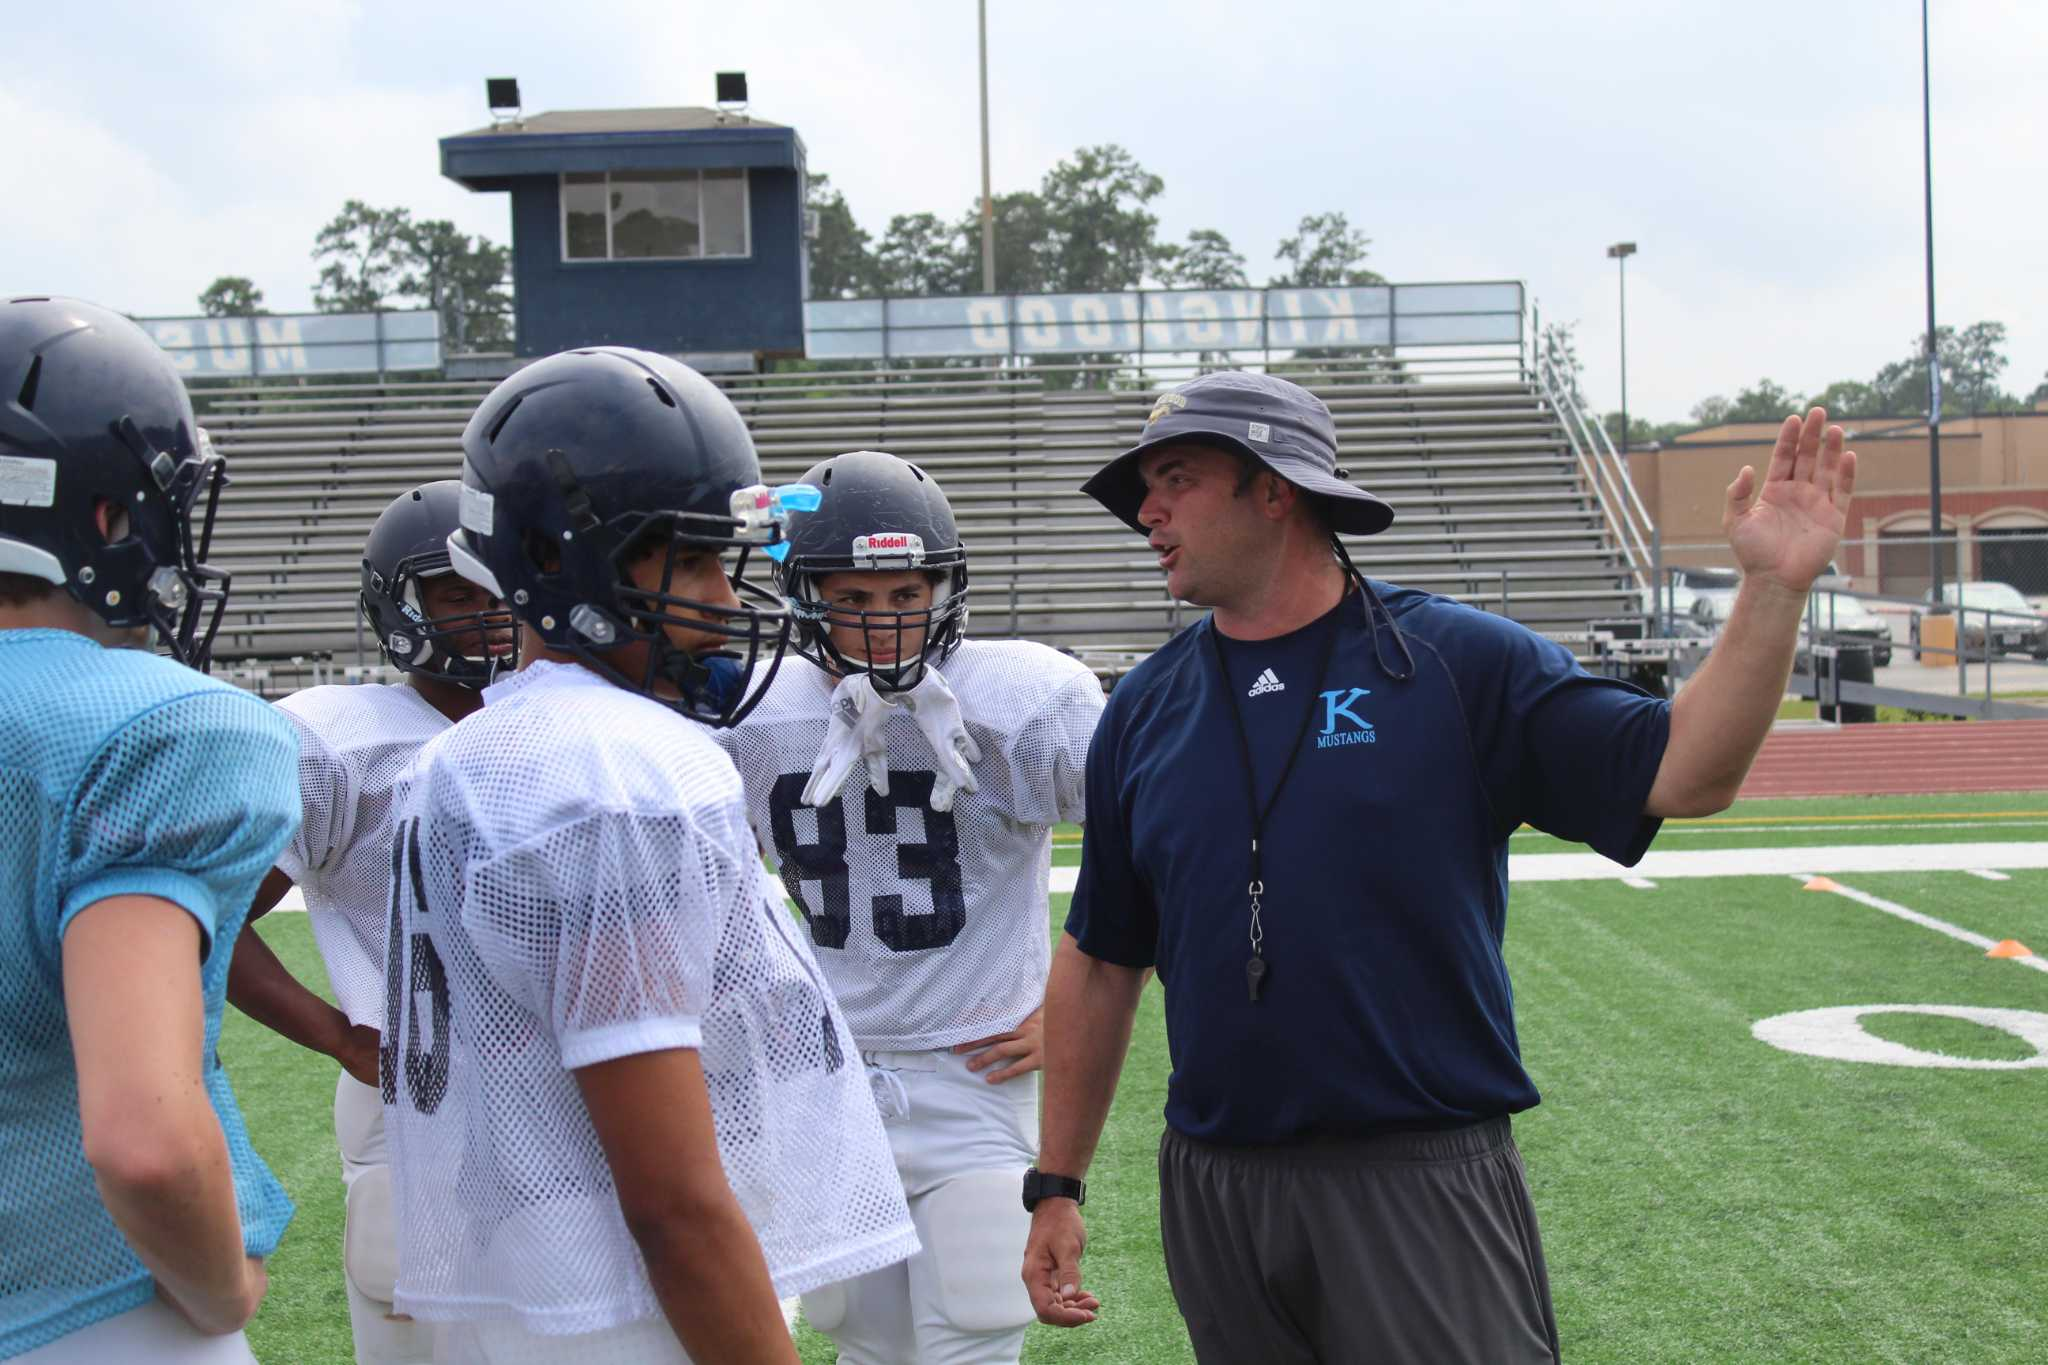 """Kingwood to host """"Our Day to Shine"""" fundraiser at scrimmage"""